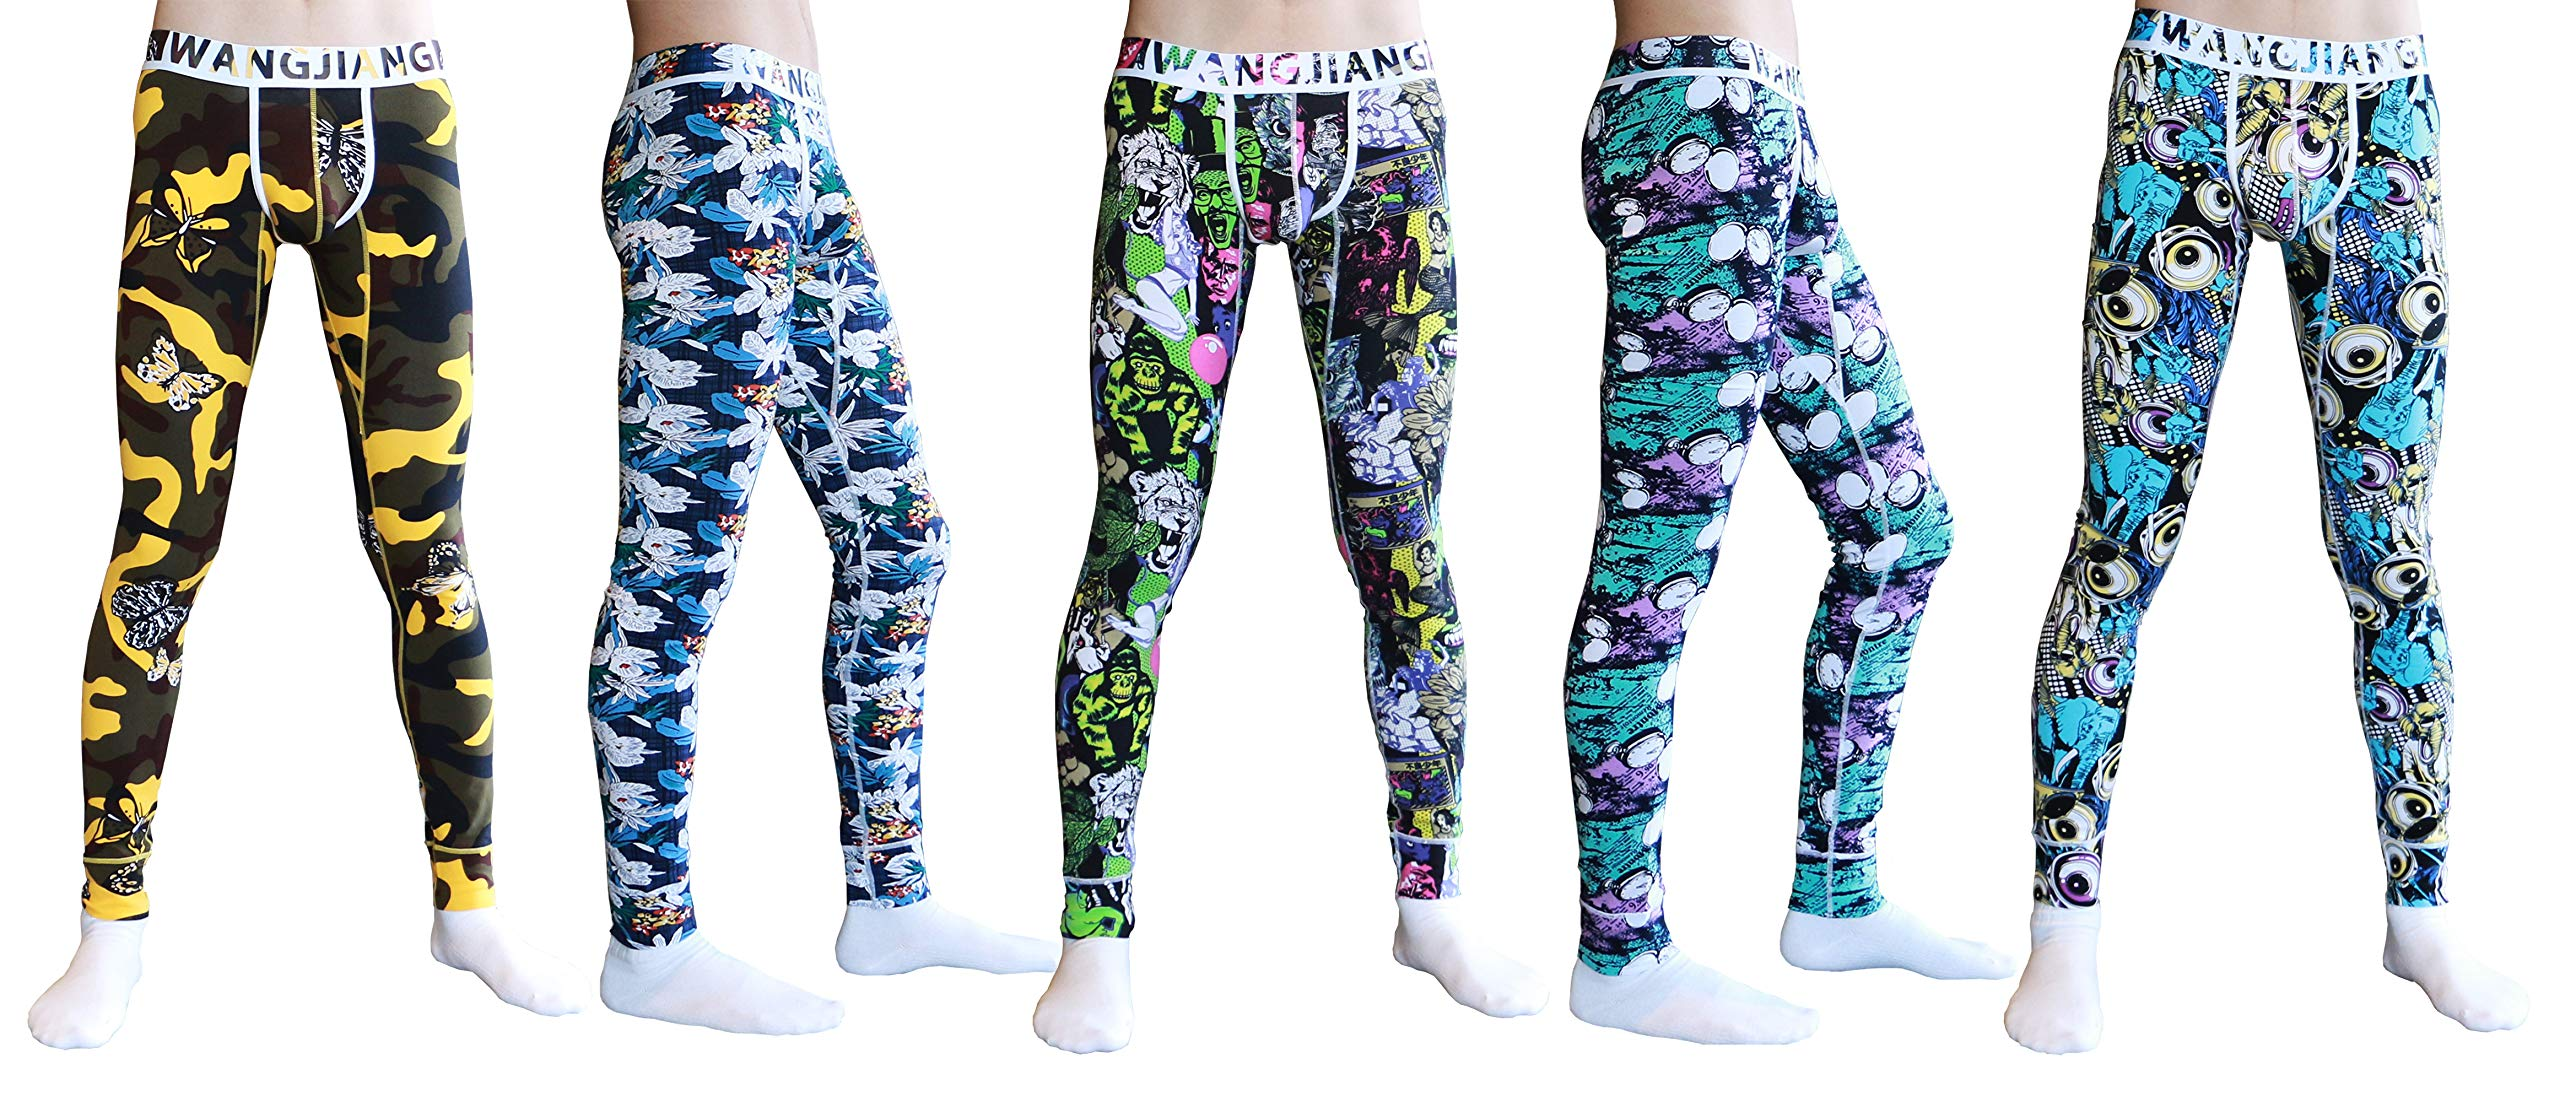 ARCITON Men's Low Rise Leggings Long Johns Thermal Pant US XL/with Tag XXL(Waist: 38''- 40'') 3027cku 5 Colors by ARCITON